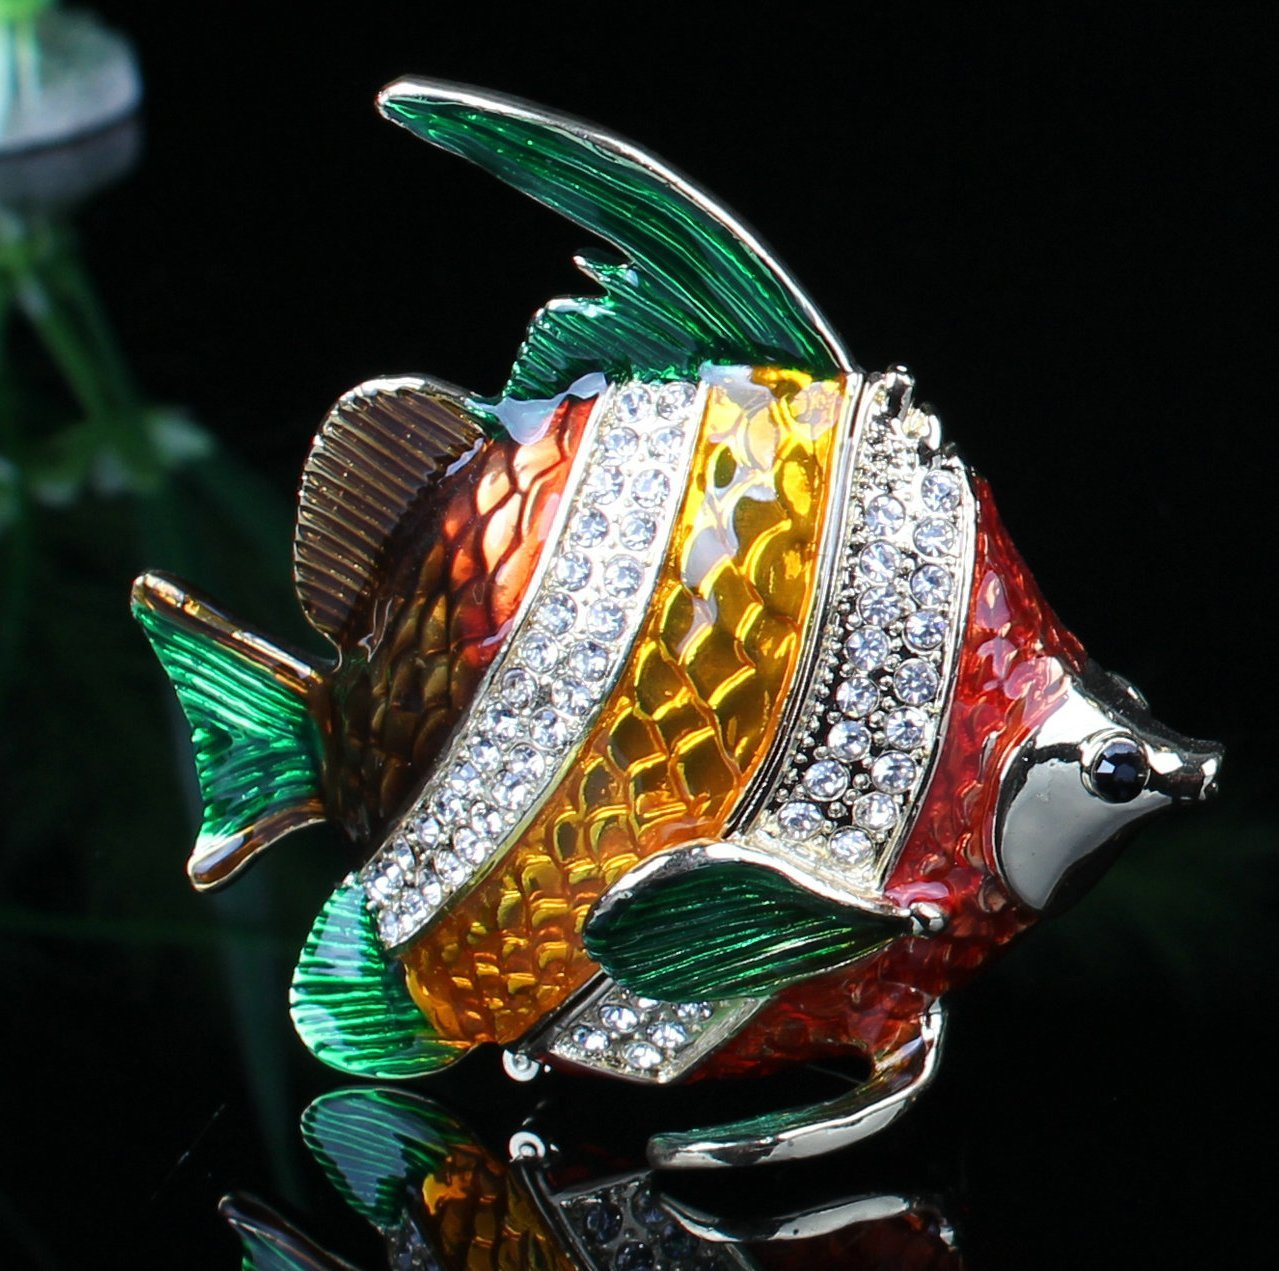 Colorful Angel Fish Crystals Jewelry Jewel Trinket Gift Box Fish Enamel Keepsake (8.5*4.2*8 CM (L*W*H))